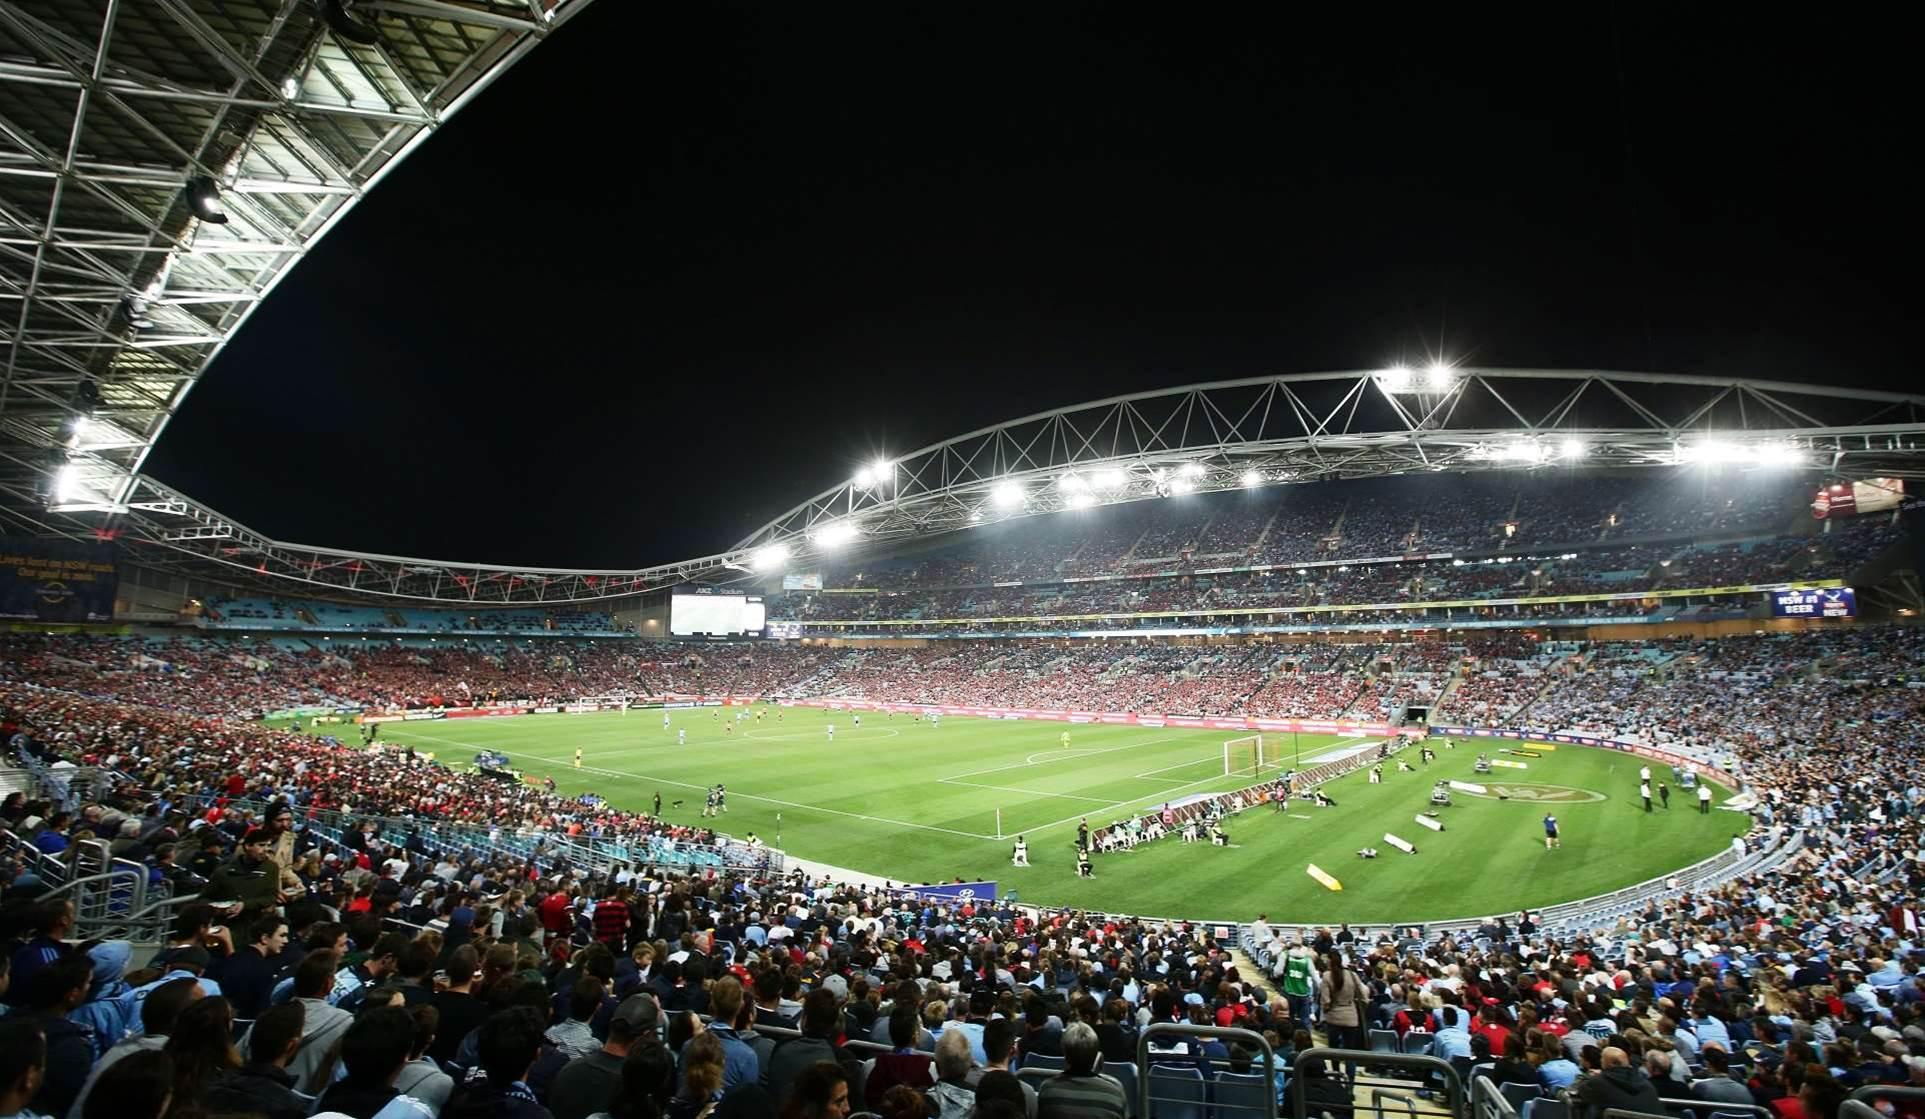 FFA lauds record crowd